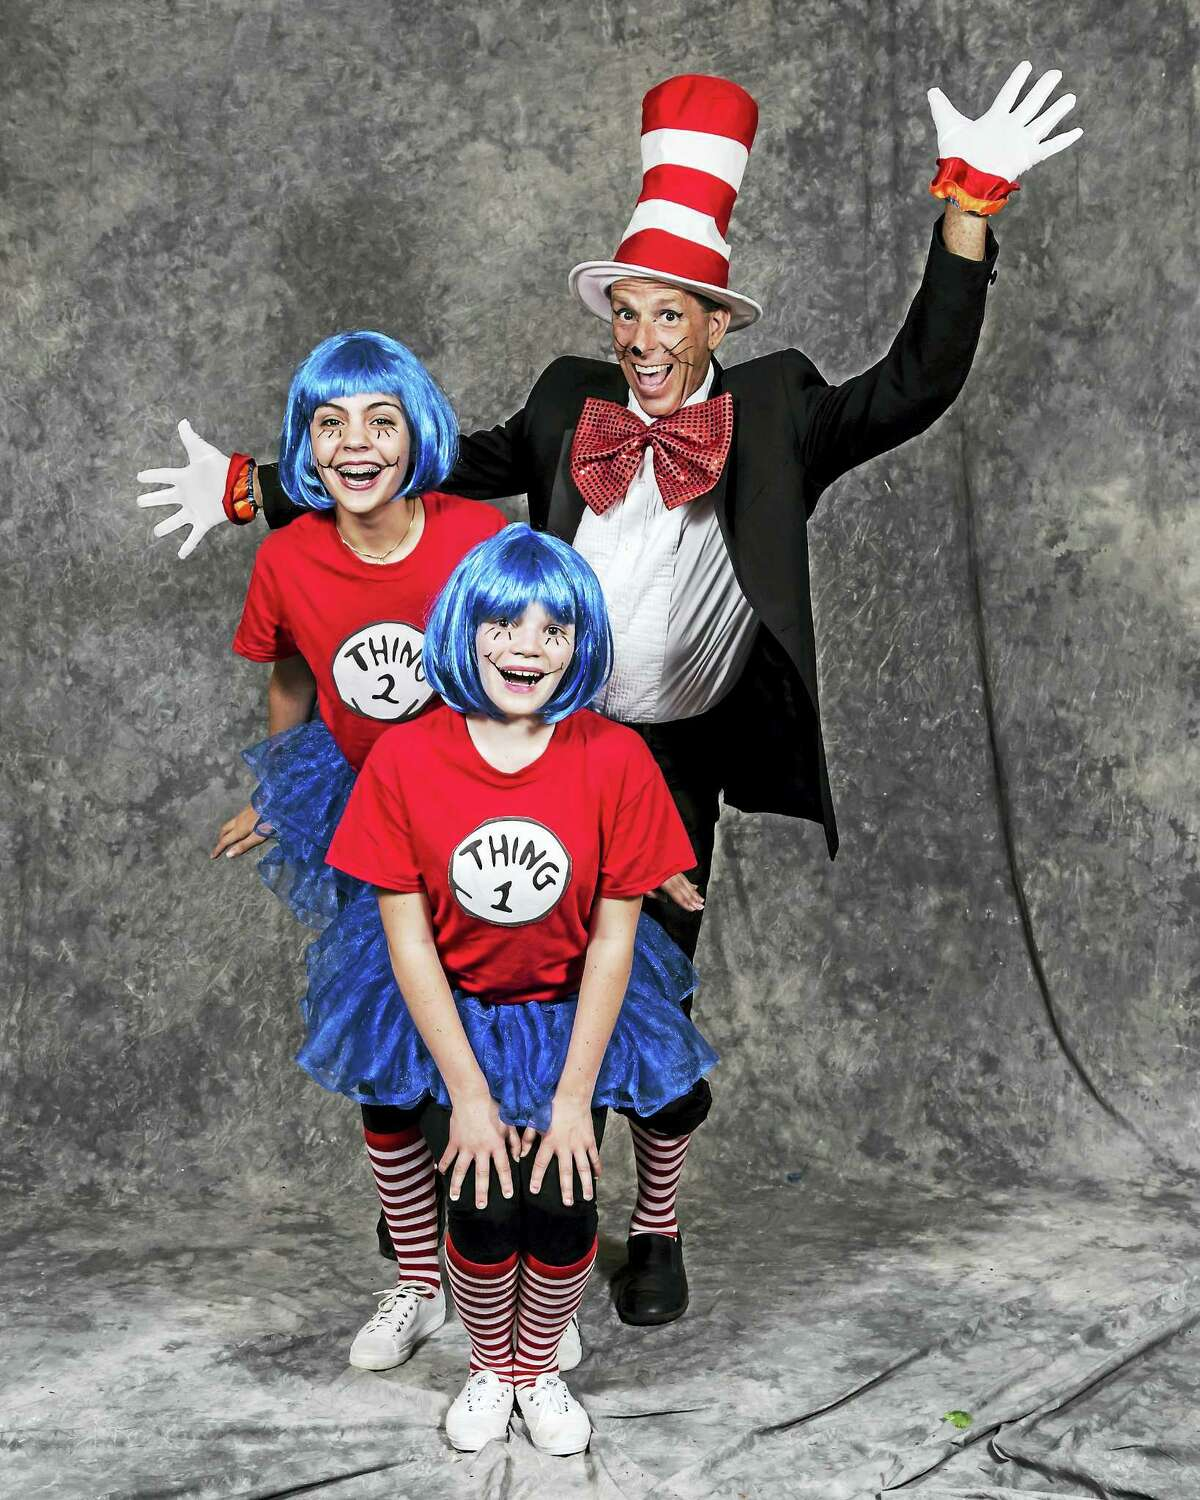 """Musicals at Richter (MAR), celebrating 33 seasons as the longest-running outdoor theater in Connecticut, continues its 2017 offerings with """"Seussical,"""" the effervescent musical featuring the beloved characters and stories of Dr. Seuss, which plays July 28 – Aug. 12."""